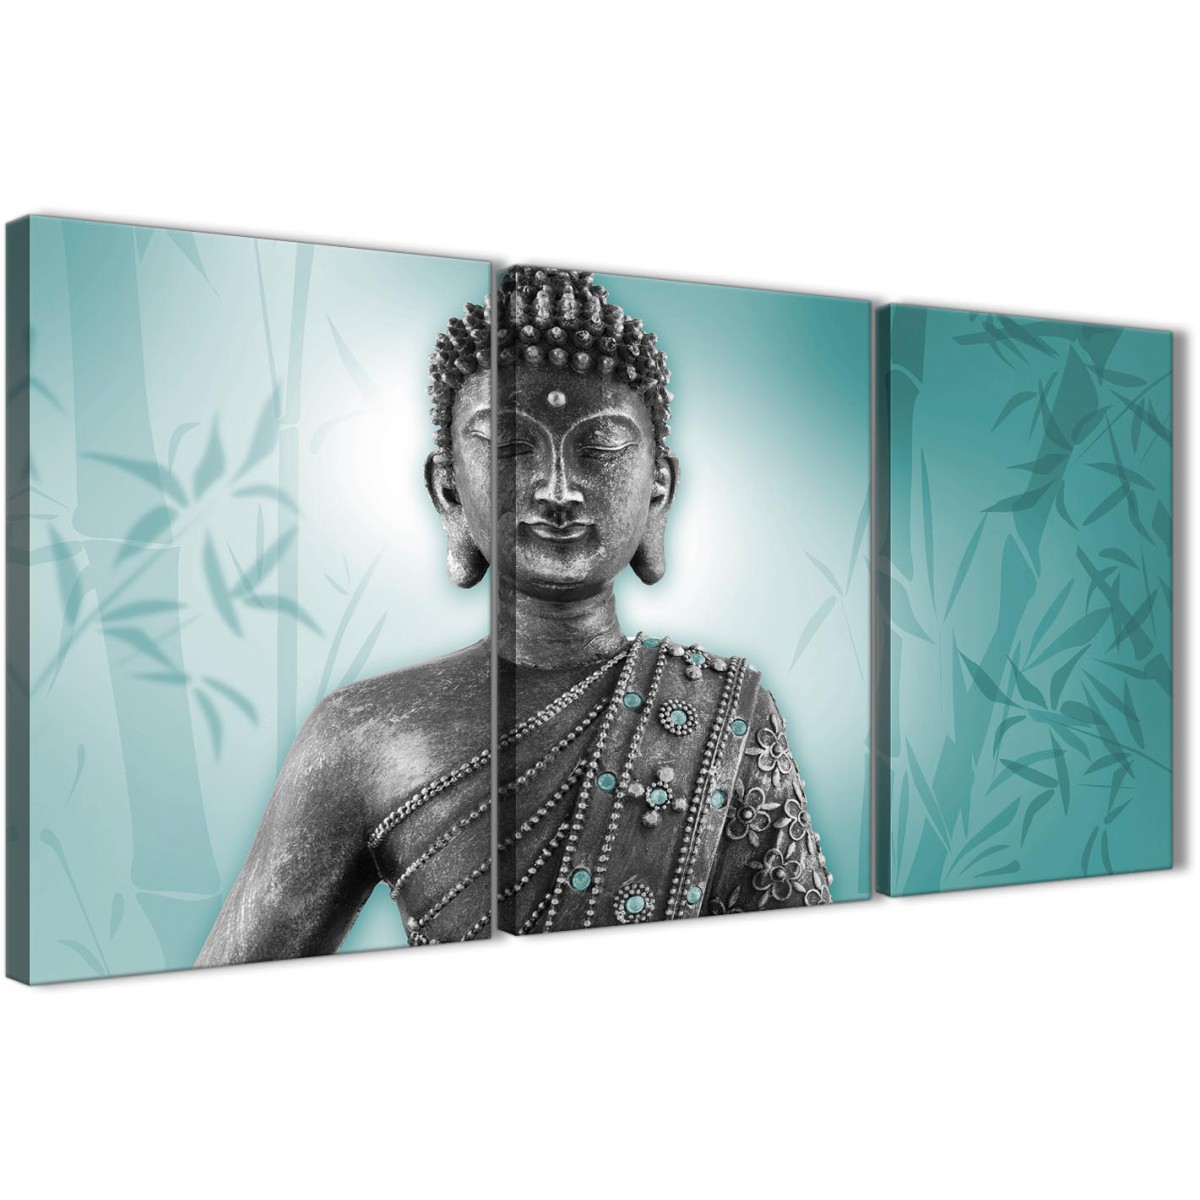 Teal And Grey Silver Canvas Art Prints Of Buddha Split